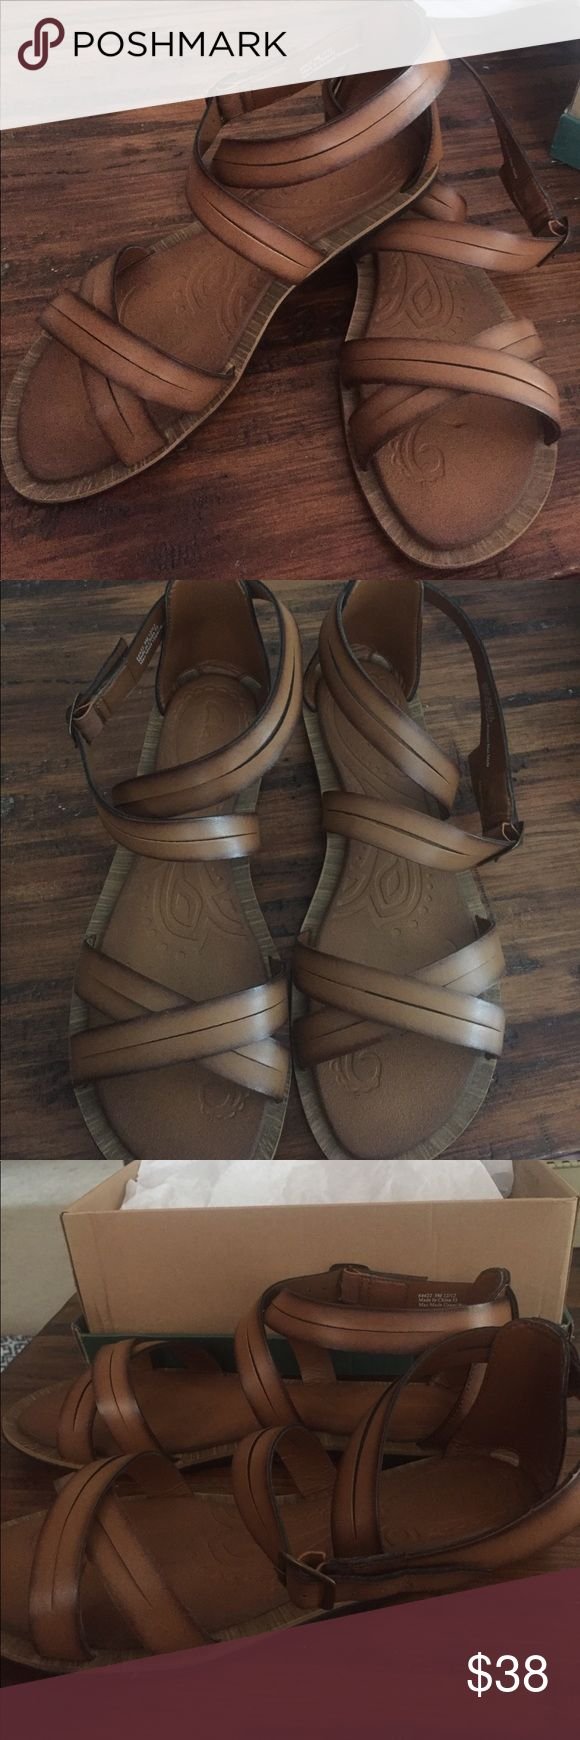 Brand New Clarks Sandals Size 9 Amazing leather strap Clarks Sandals brand New in the box! They strap around the ankle and are the perfect chesnut brown color! Clarks Shoes Sandals